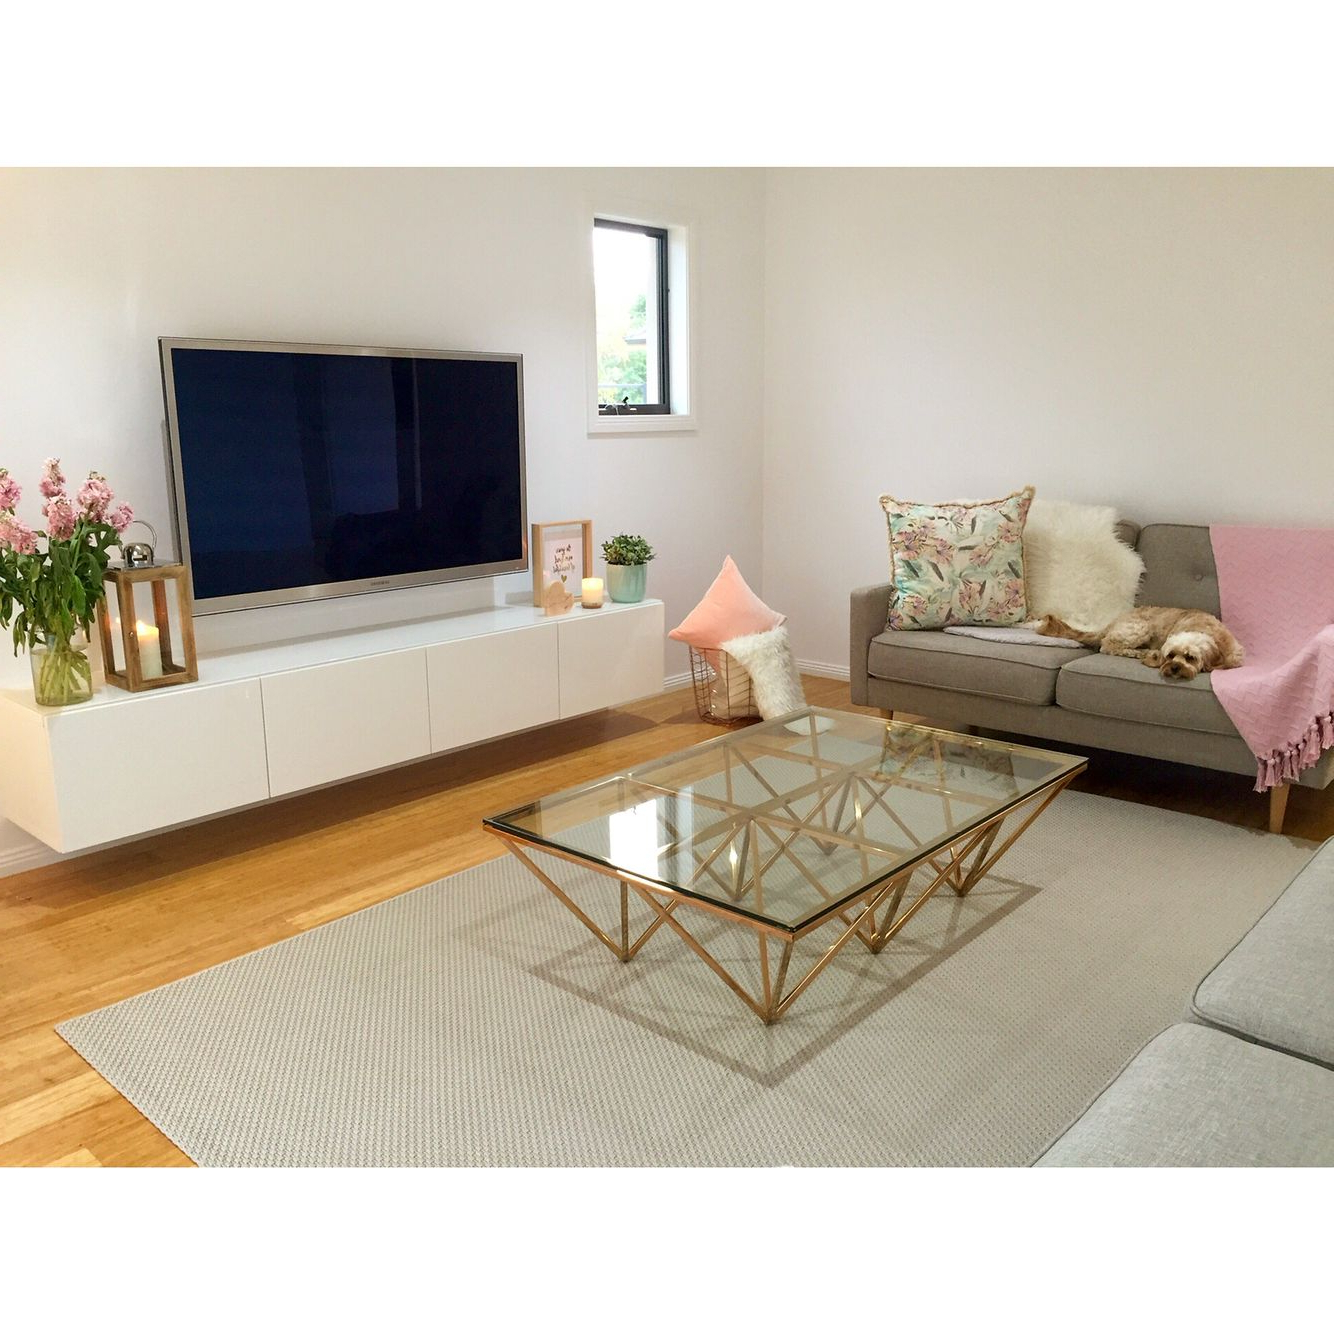 Famous Contemporary Scandinavian Decor, Copper Coffee Table, Floating Tv Within Echo Tv Units (View 11 of 20)